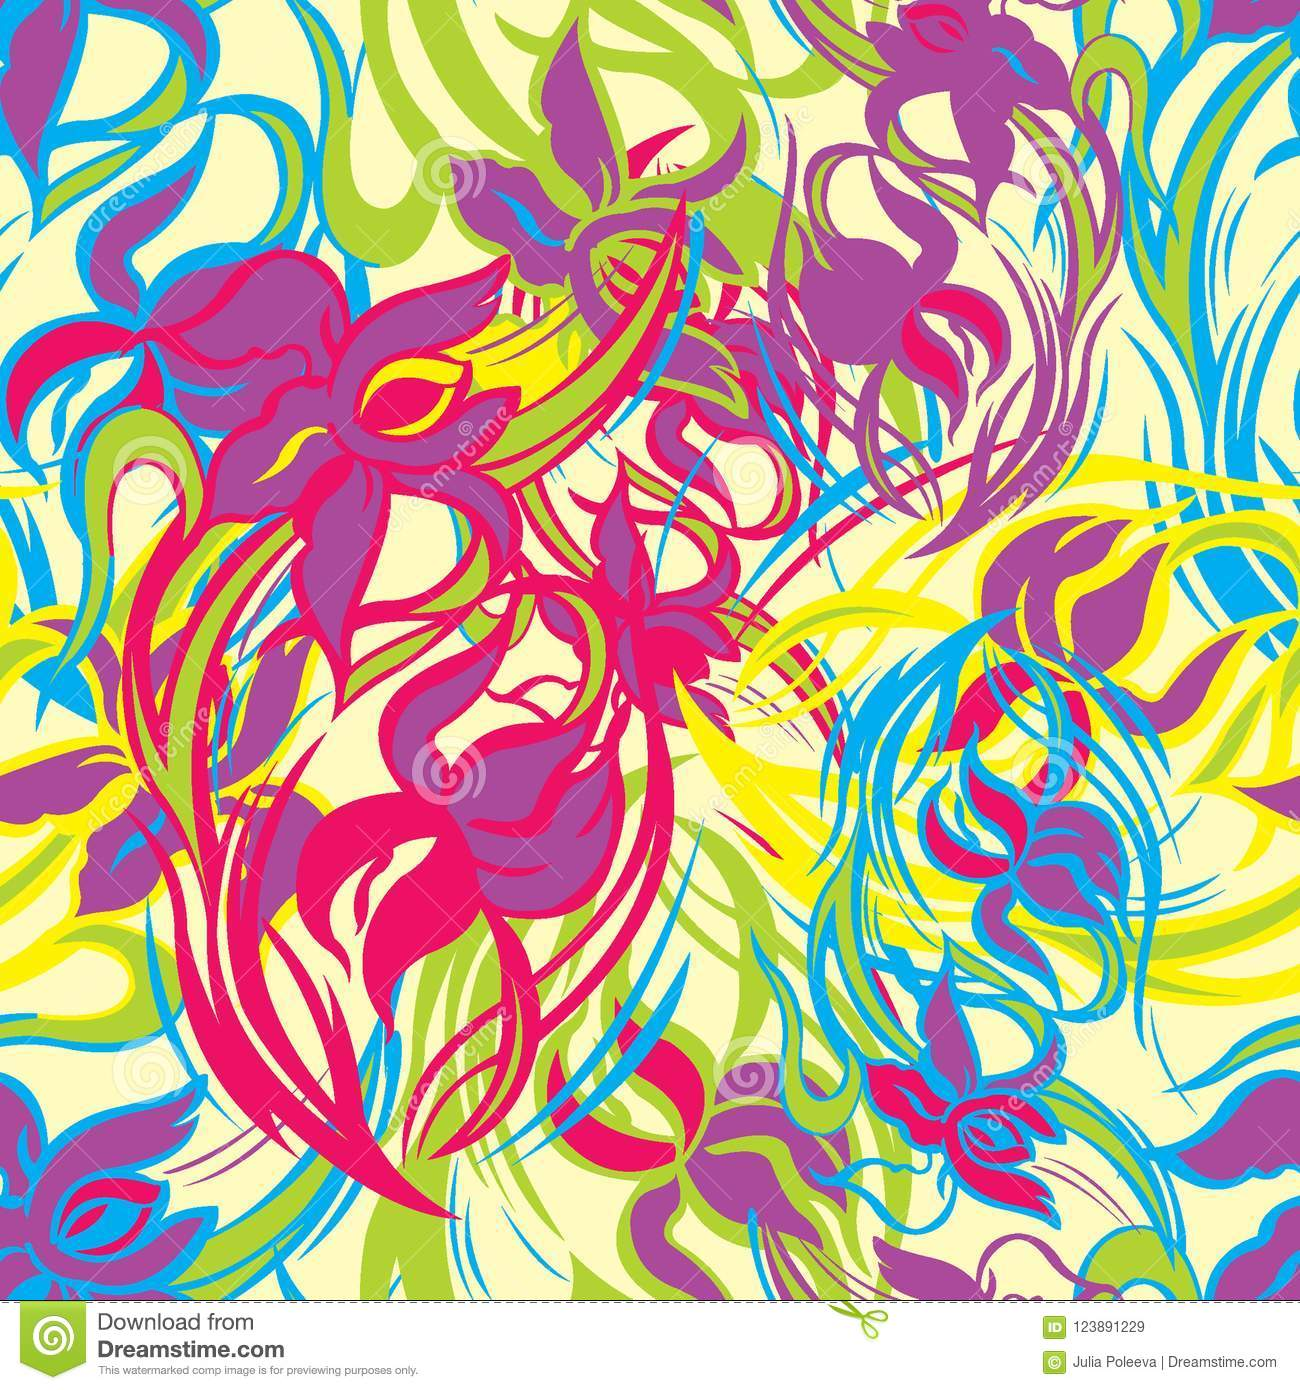 Colorful floral seamless pattern of abstract irises. Vector